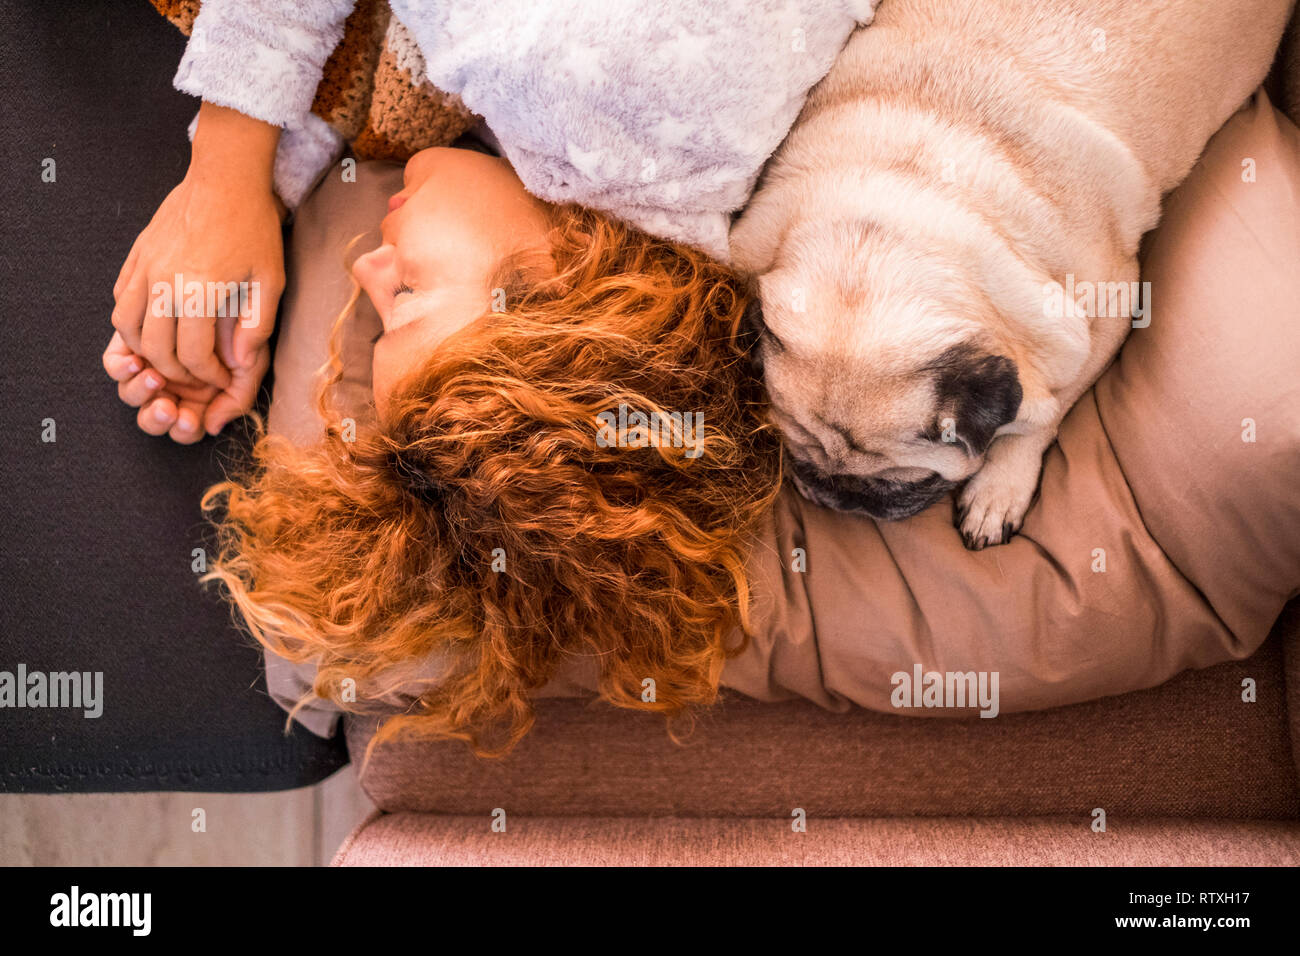 Love and protection and best friends forever concept with beautiful caucasian woman sleeping near her lovely puppy dog pug - friendship from top verti - Stock Image